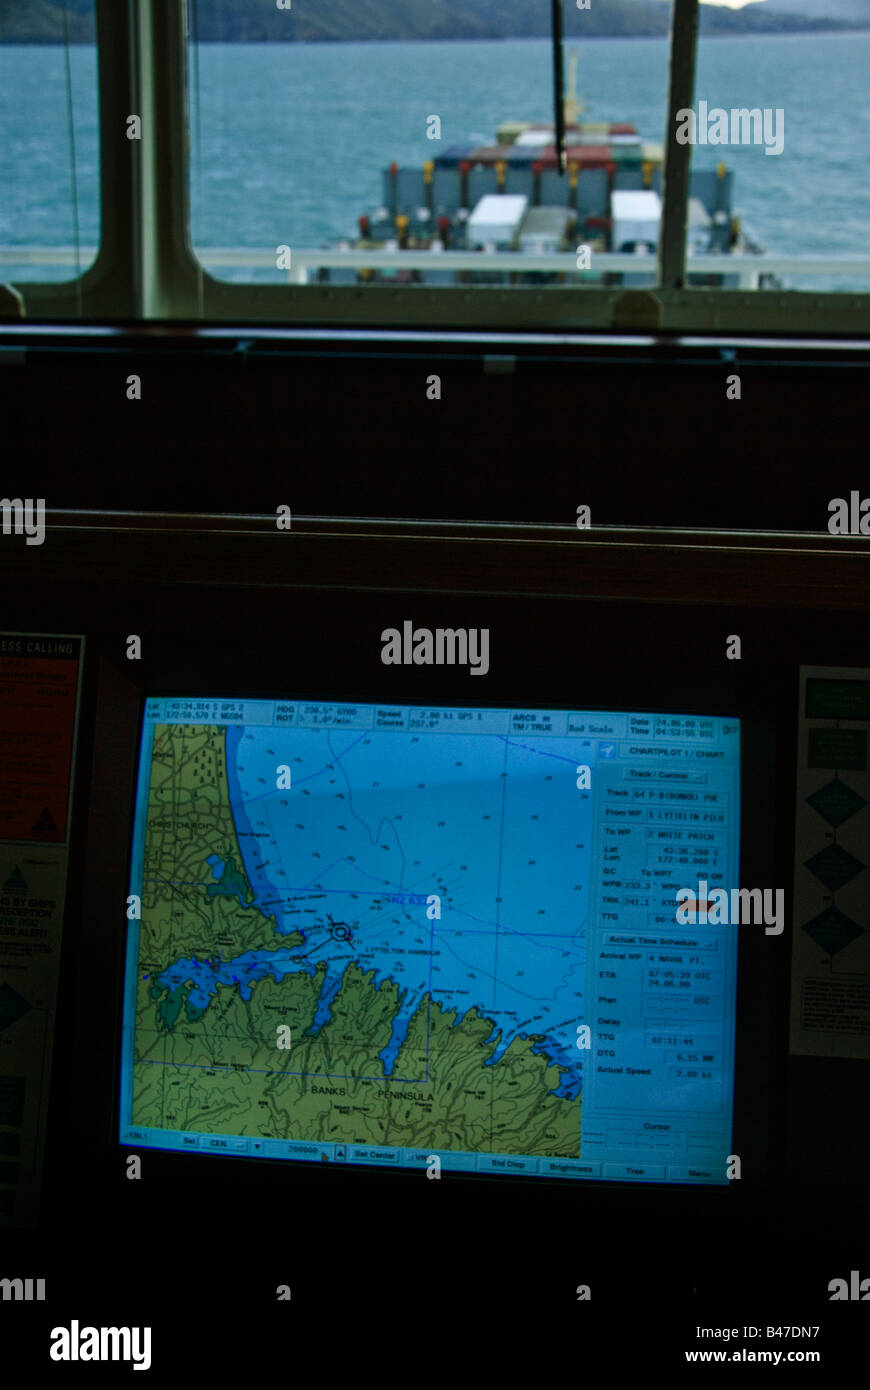 Electronc chart display on the bridge of a container ship entering Lyttelton Harbour, New Zealand. - Stock Image